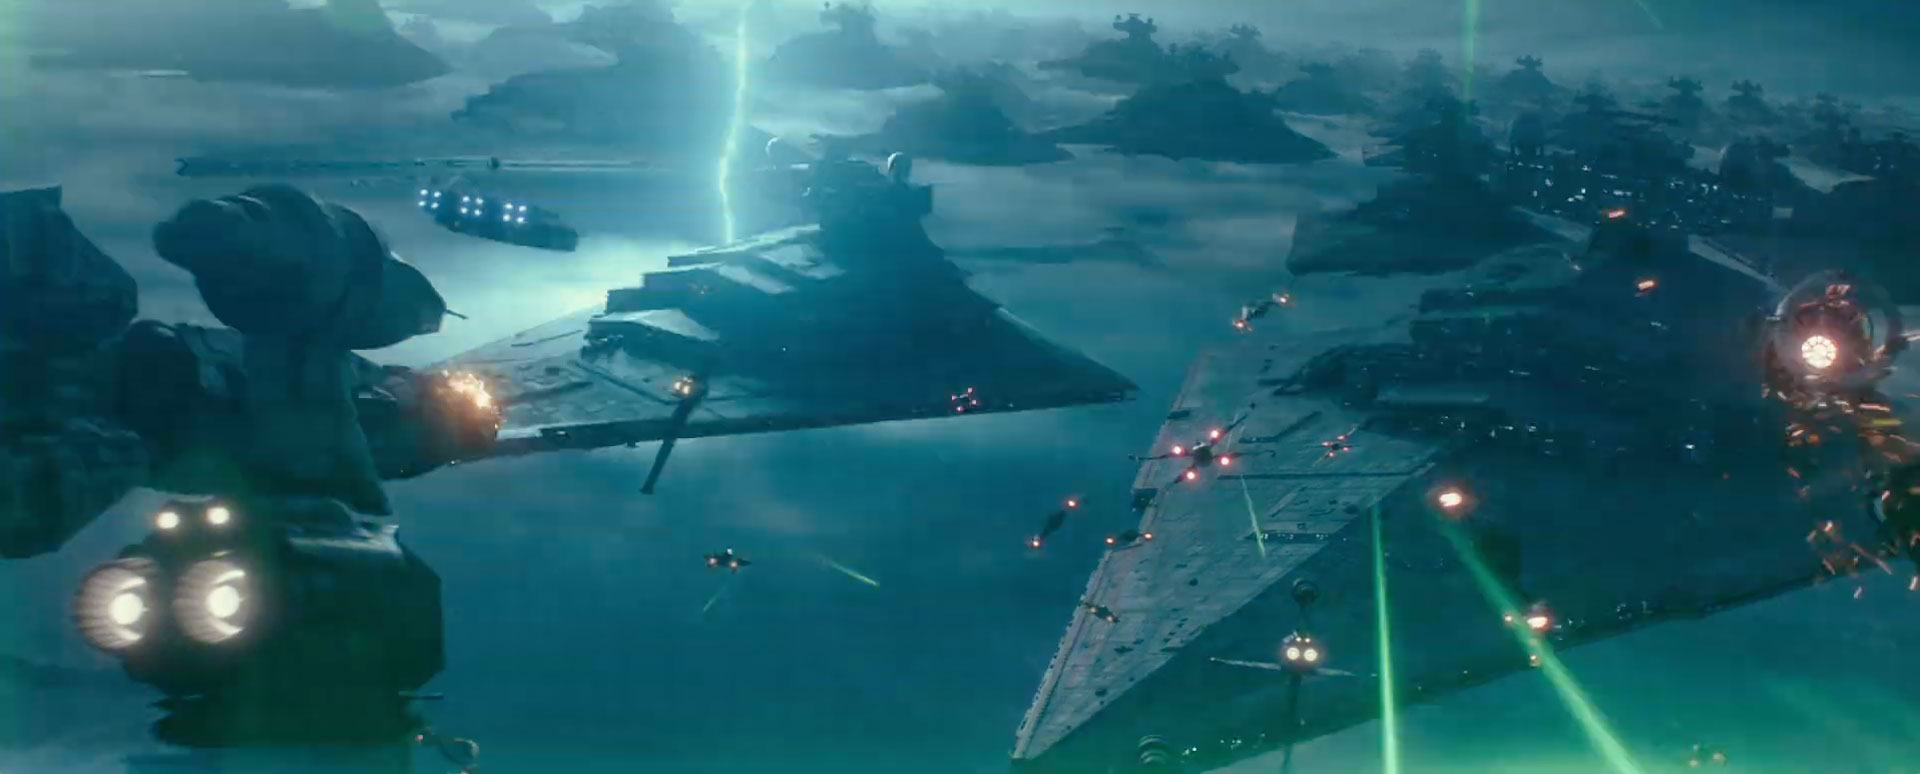 Star Wars The Rise Of Skywalker The Art Of Vfxthe Art Of Vfx